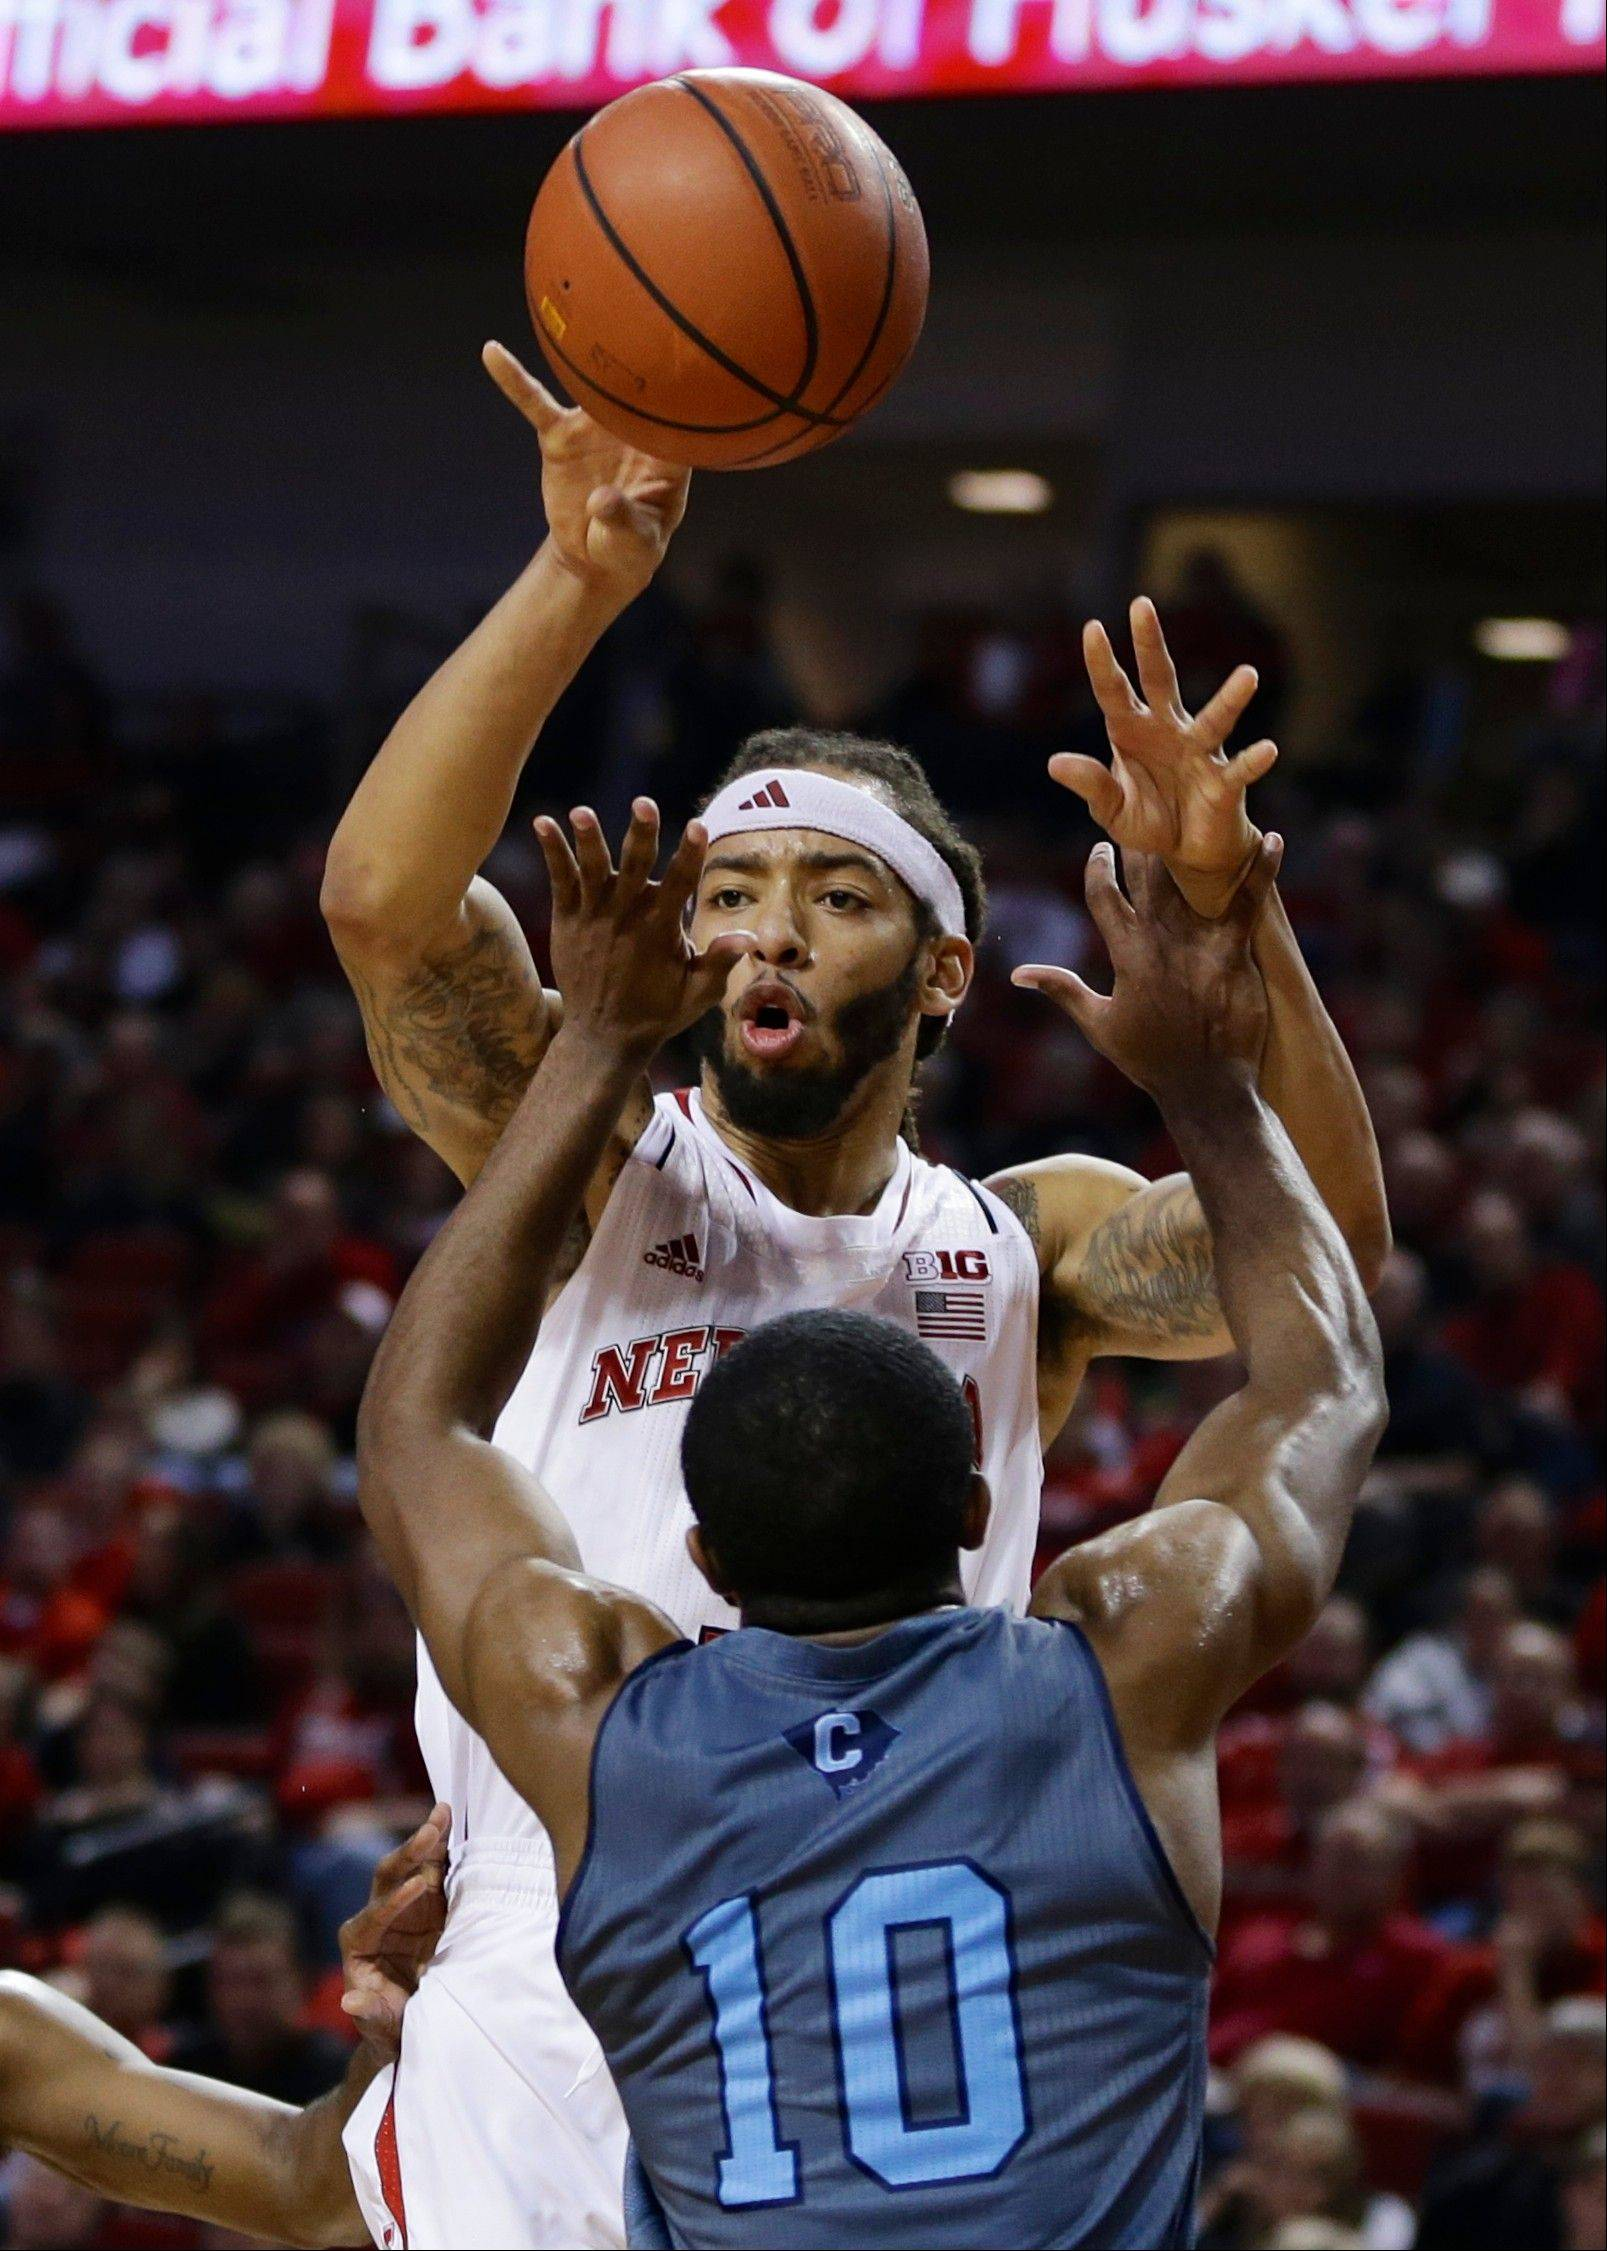 Nebraska�s Terran Petteway passes the ball over The Citadel�s Marshall Harris III during the second half of Saturday�s game in Lincoln, Neb.